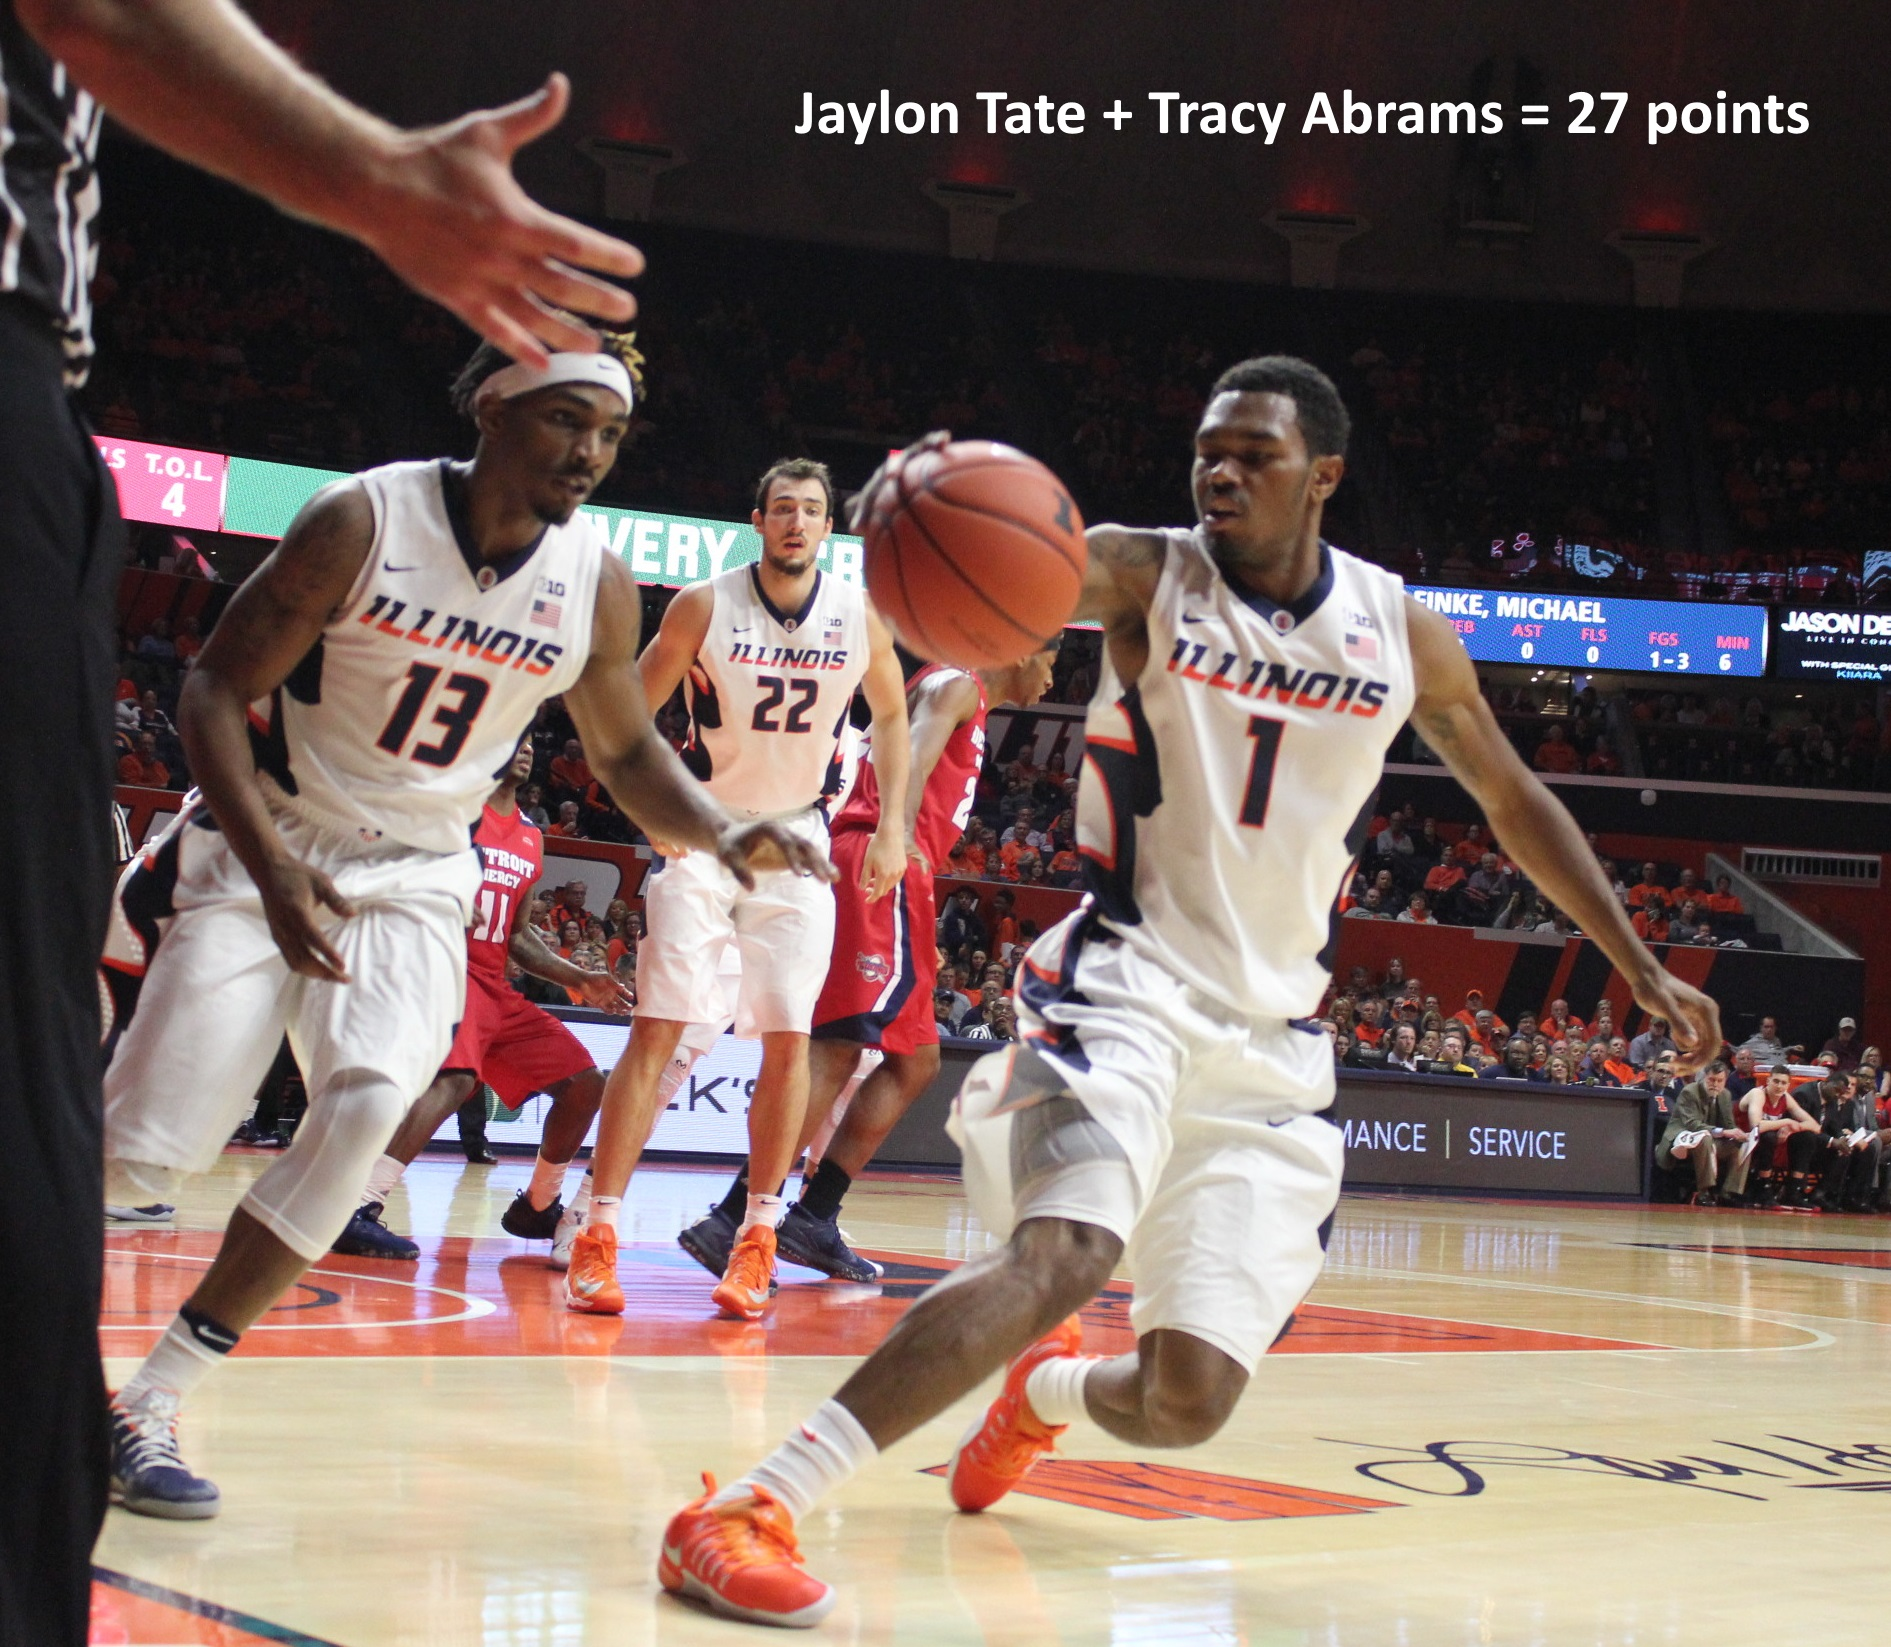 jaylon-tate-tracy-abrams-27-points